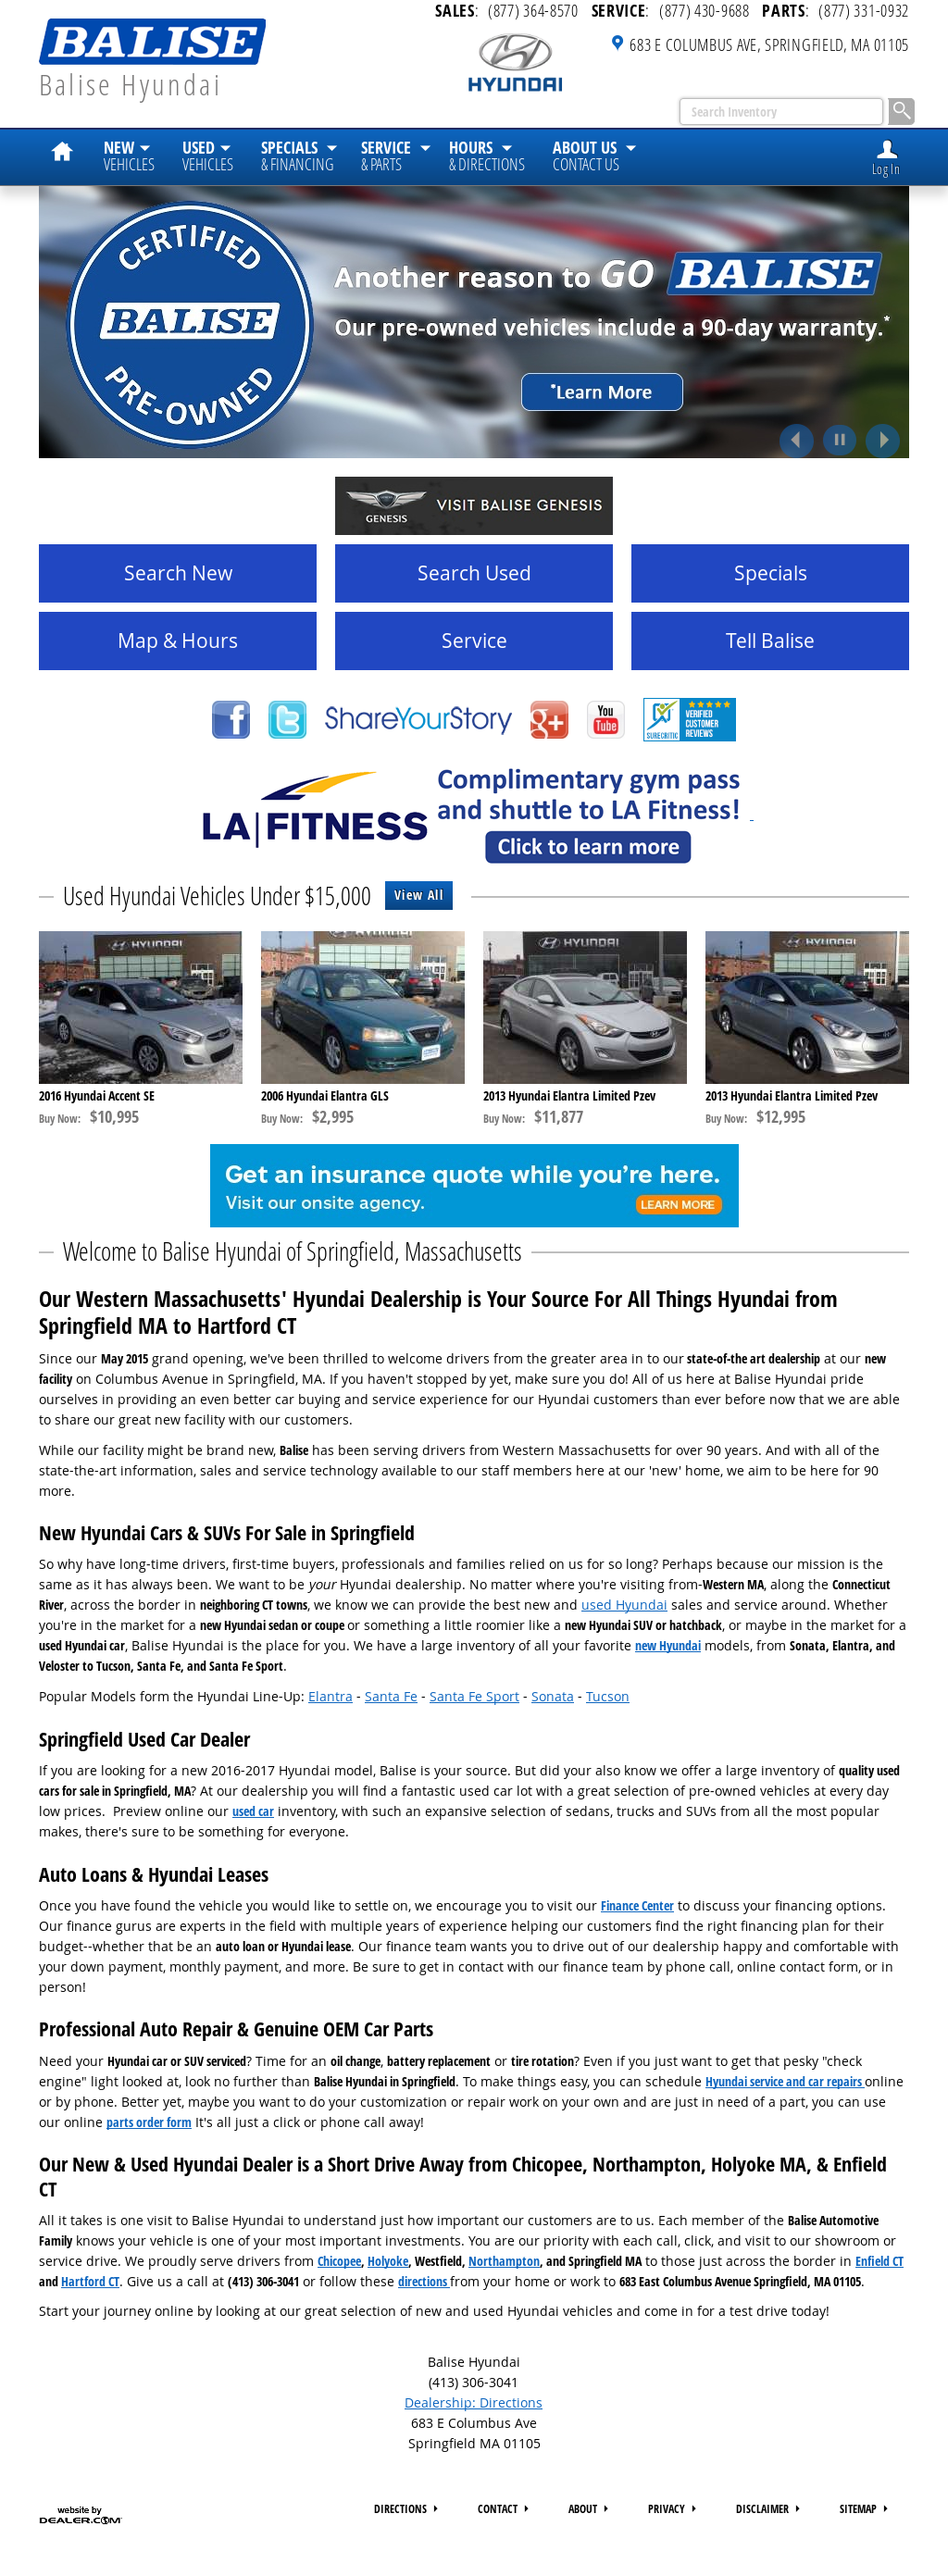 Exceptional Balise Hyundai Springfield Competitors, Revenue And Employees   Owler  Company Profile